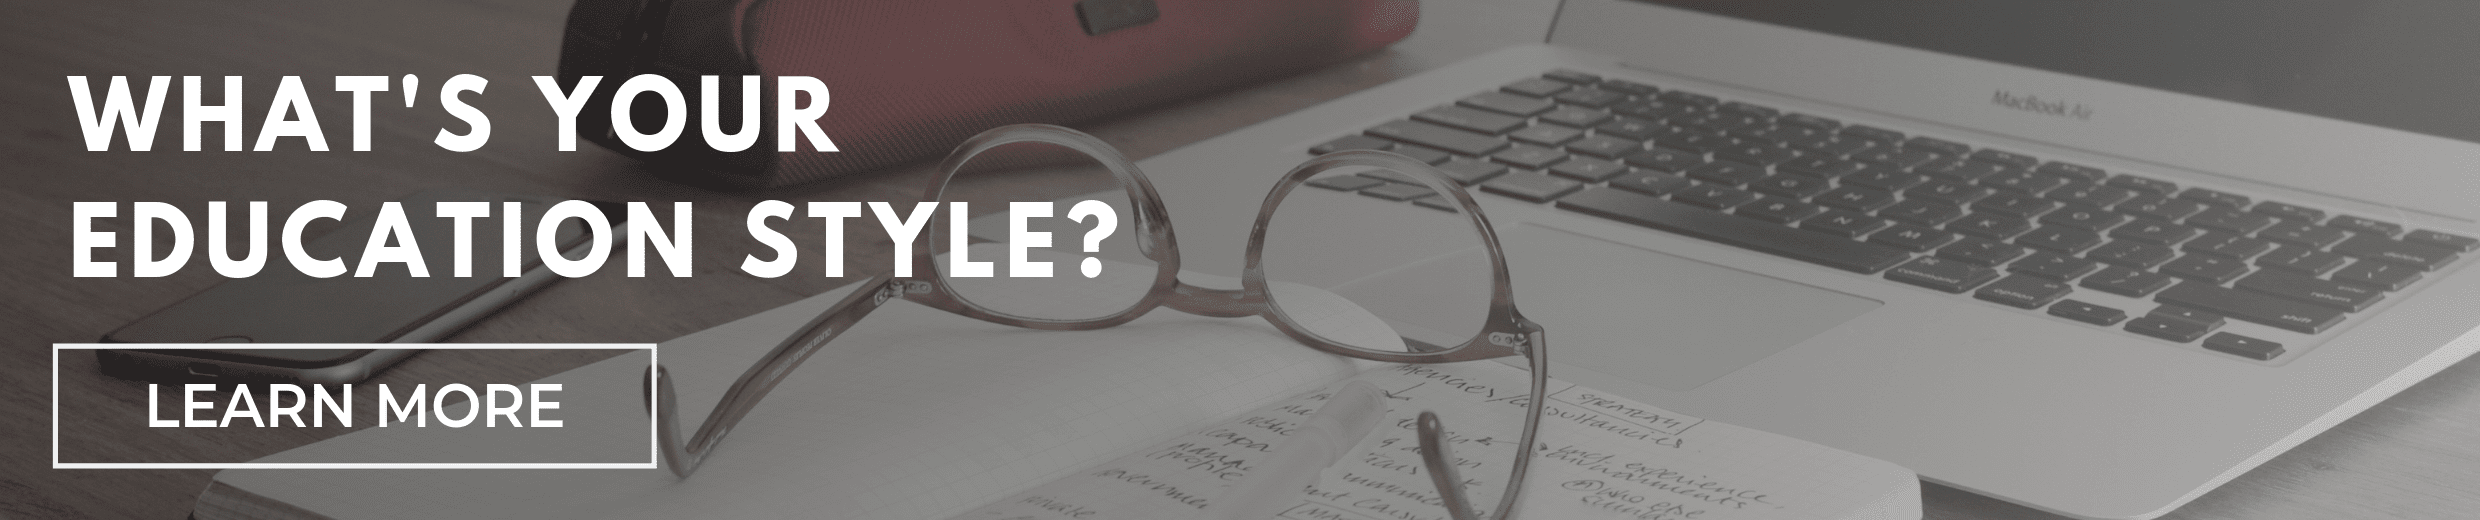 What's Your Education Style? Let's Decode the Terms